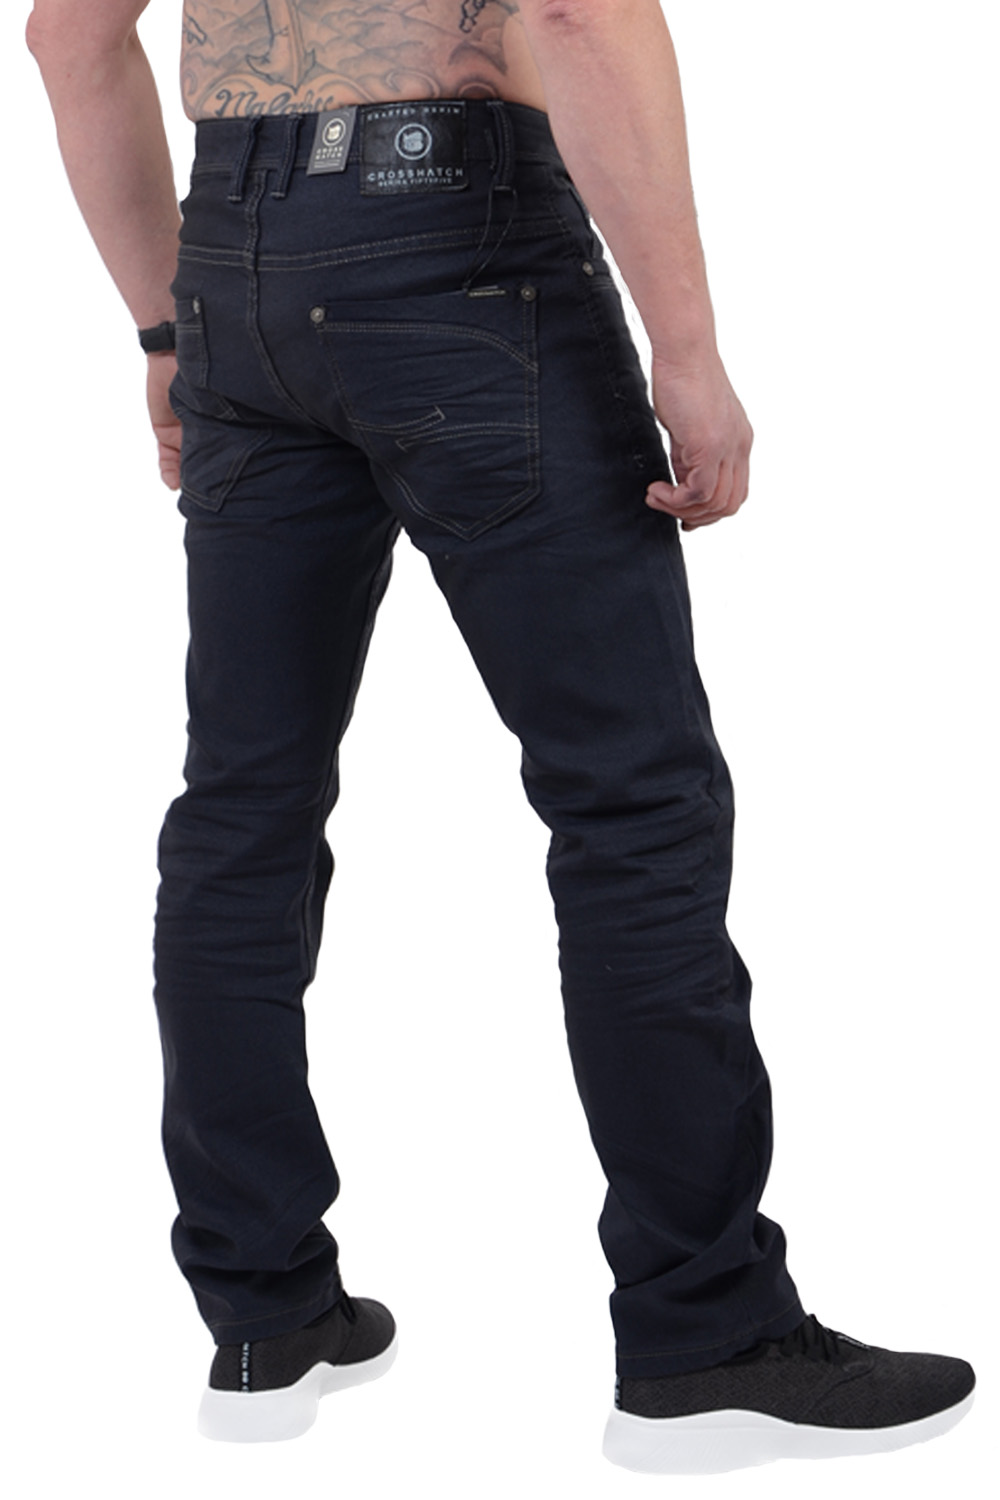 Crosshatch-Mens-Menzo-Jeans-Designer-Straight-Cut-Slim-Stretch-Denim-Trousers thumbnail 5